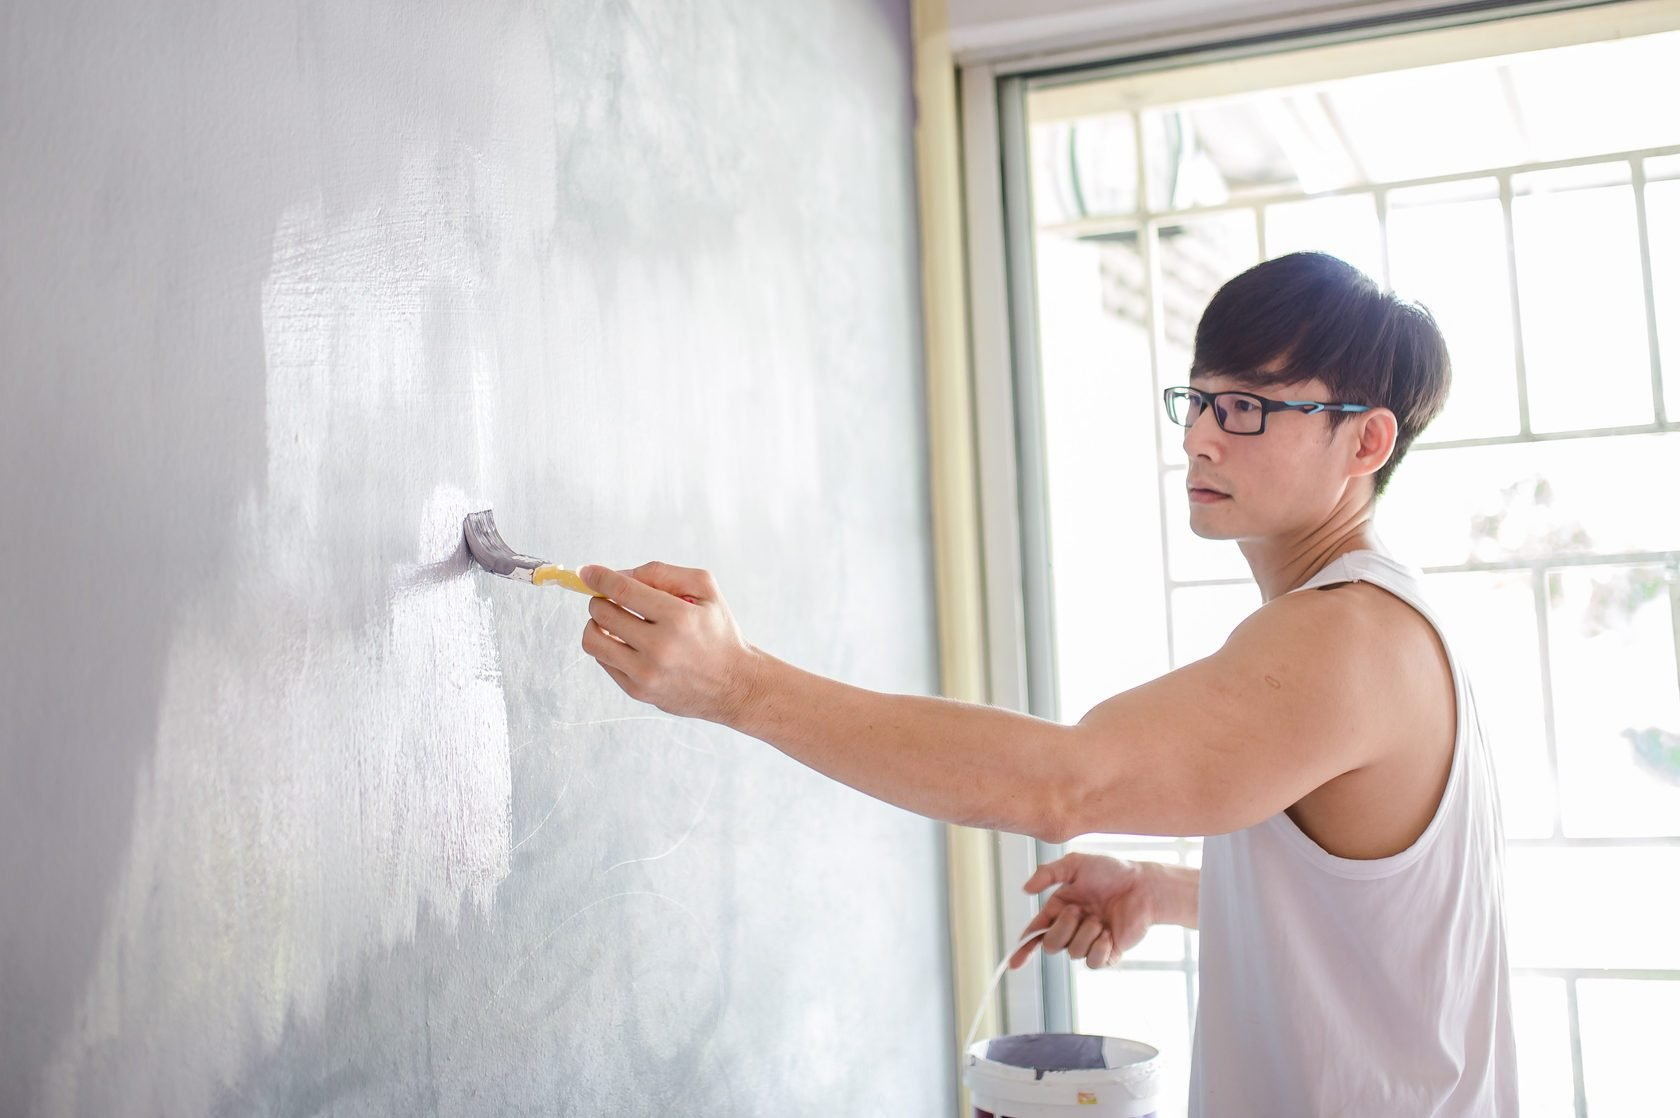 An Asia Chinese mature man painting walls using paint brush in his new house. Home makeover and renovation concept.